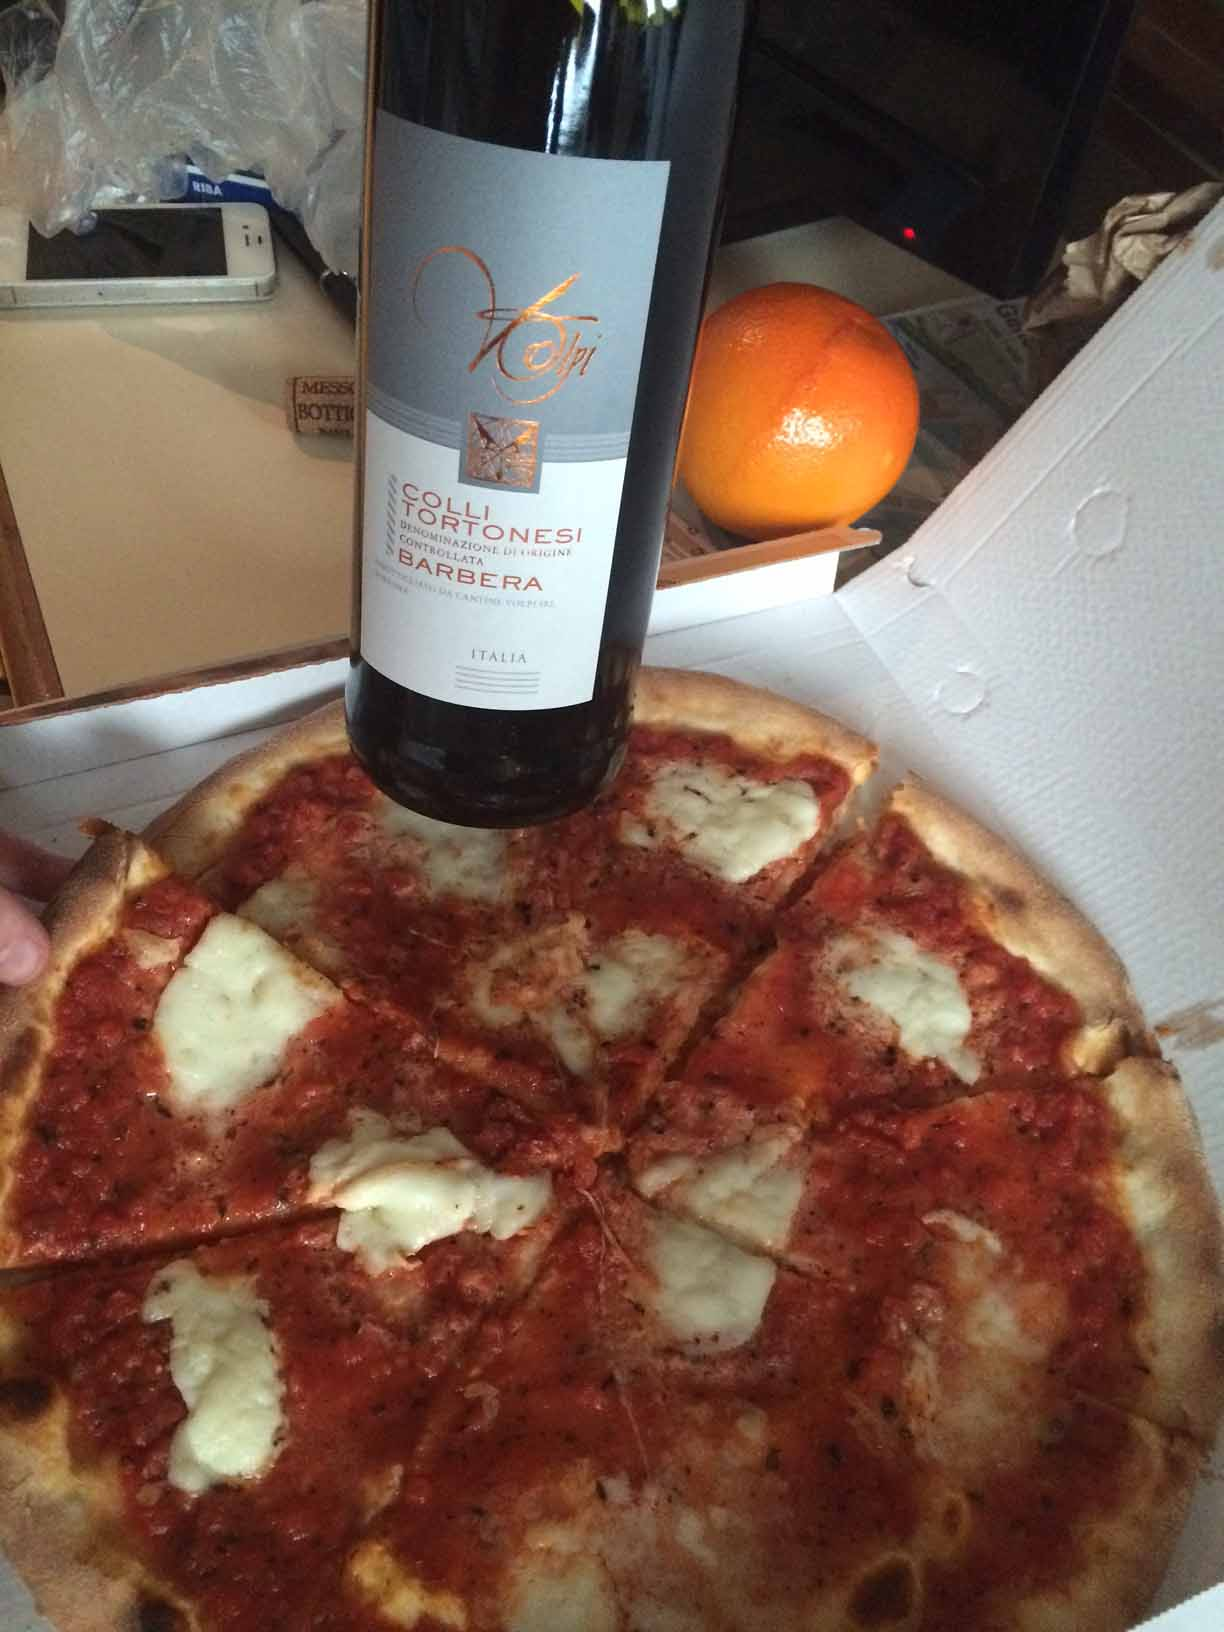 Mmmmm. Pizza and Chianti. The food was great!